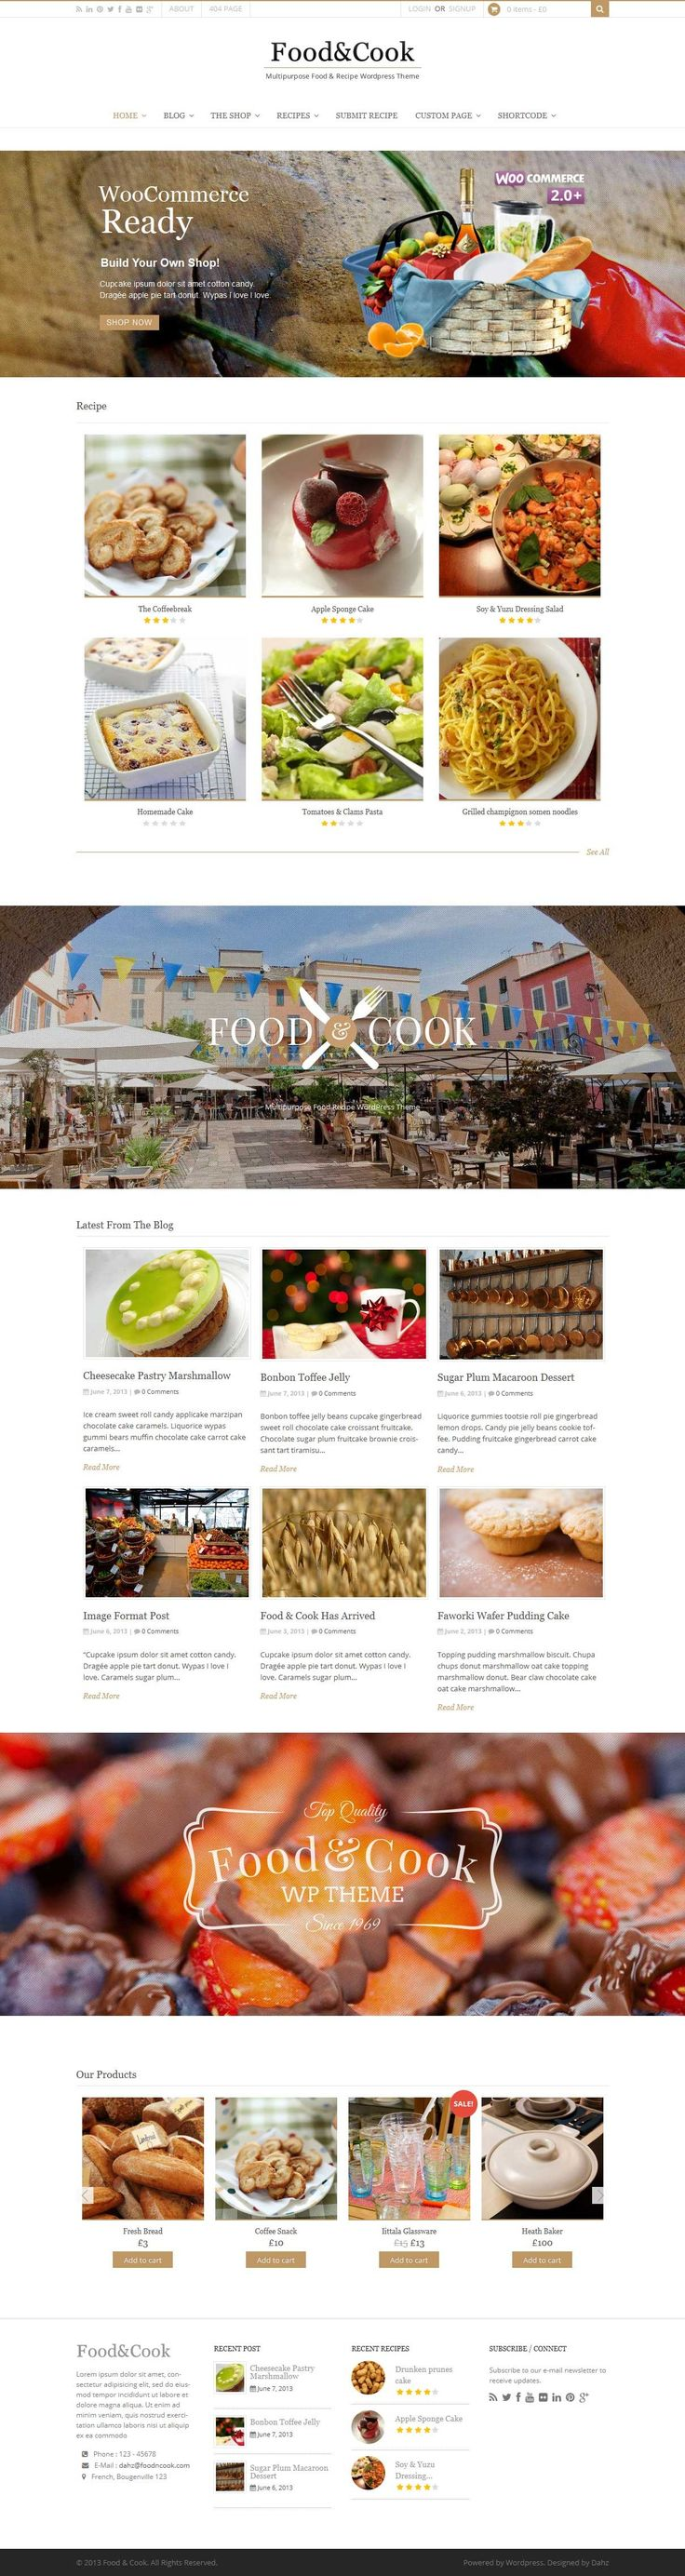 Food & Cook is your Food Blog Wordpress Theme, sharing recipes and cooking tips can't get any easier than this.